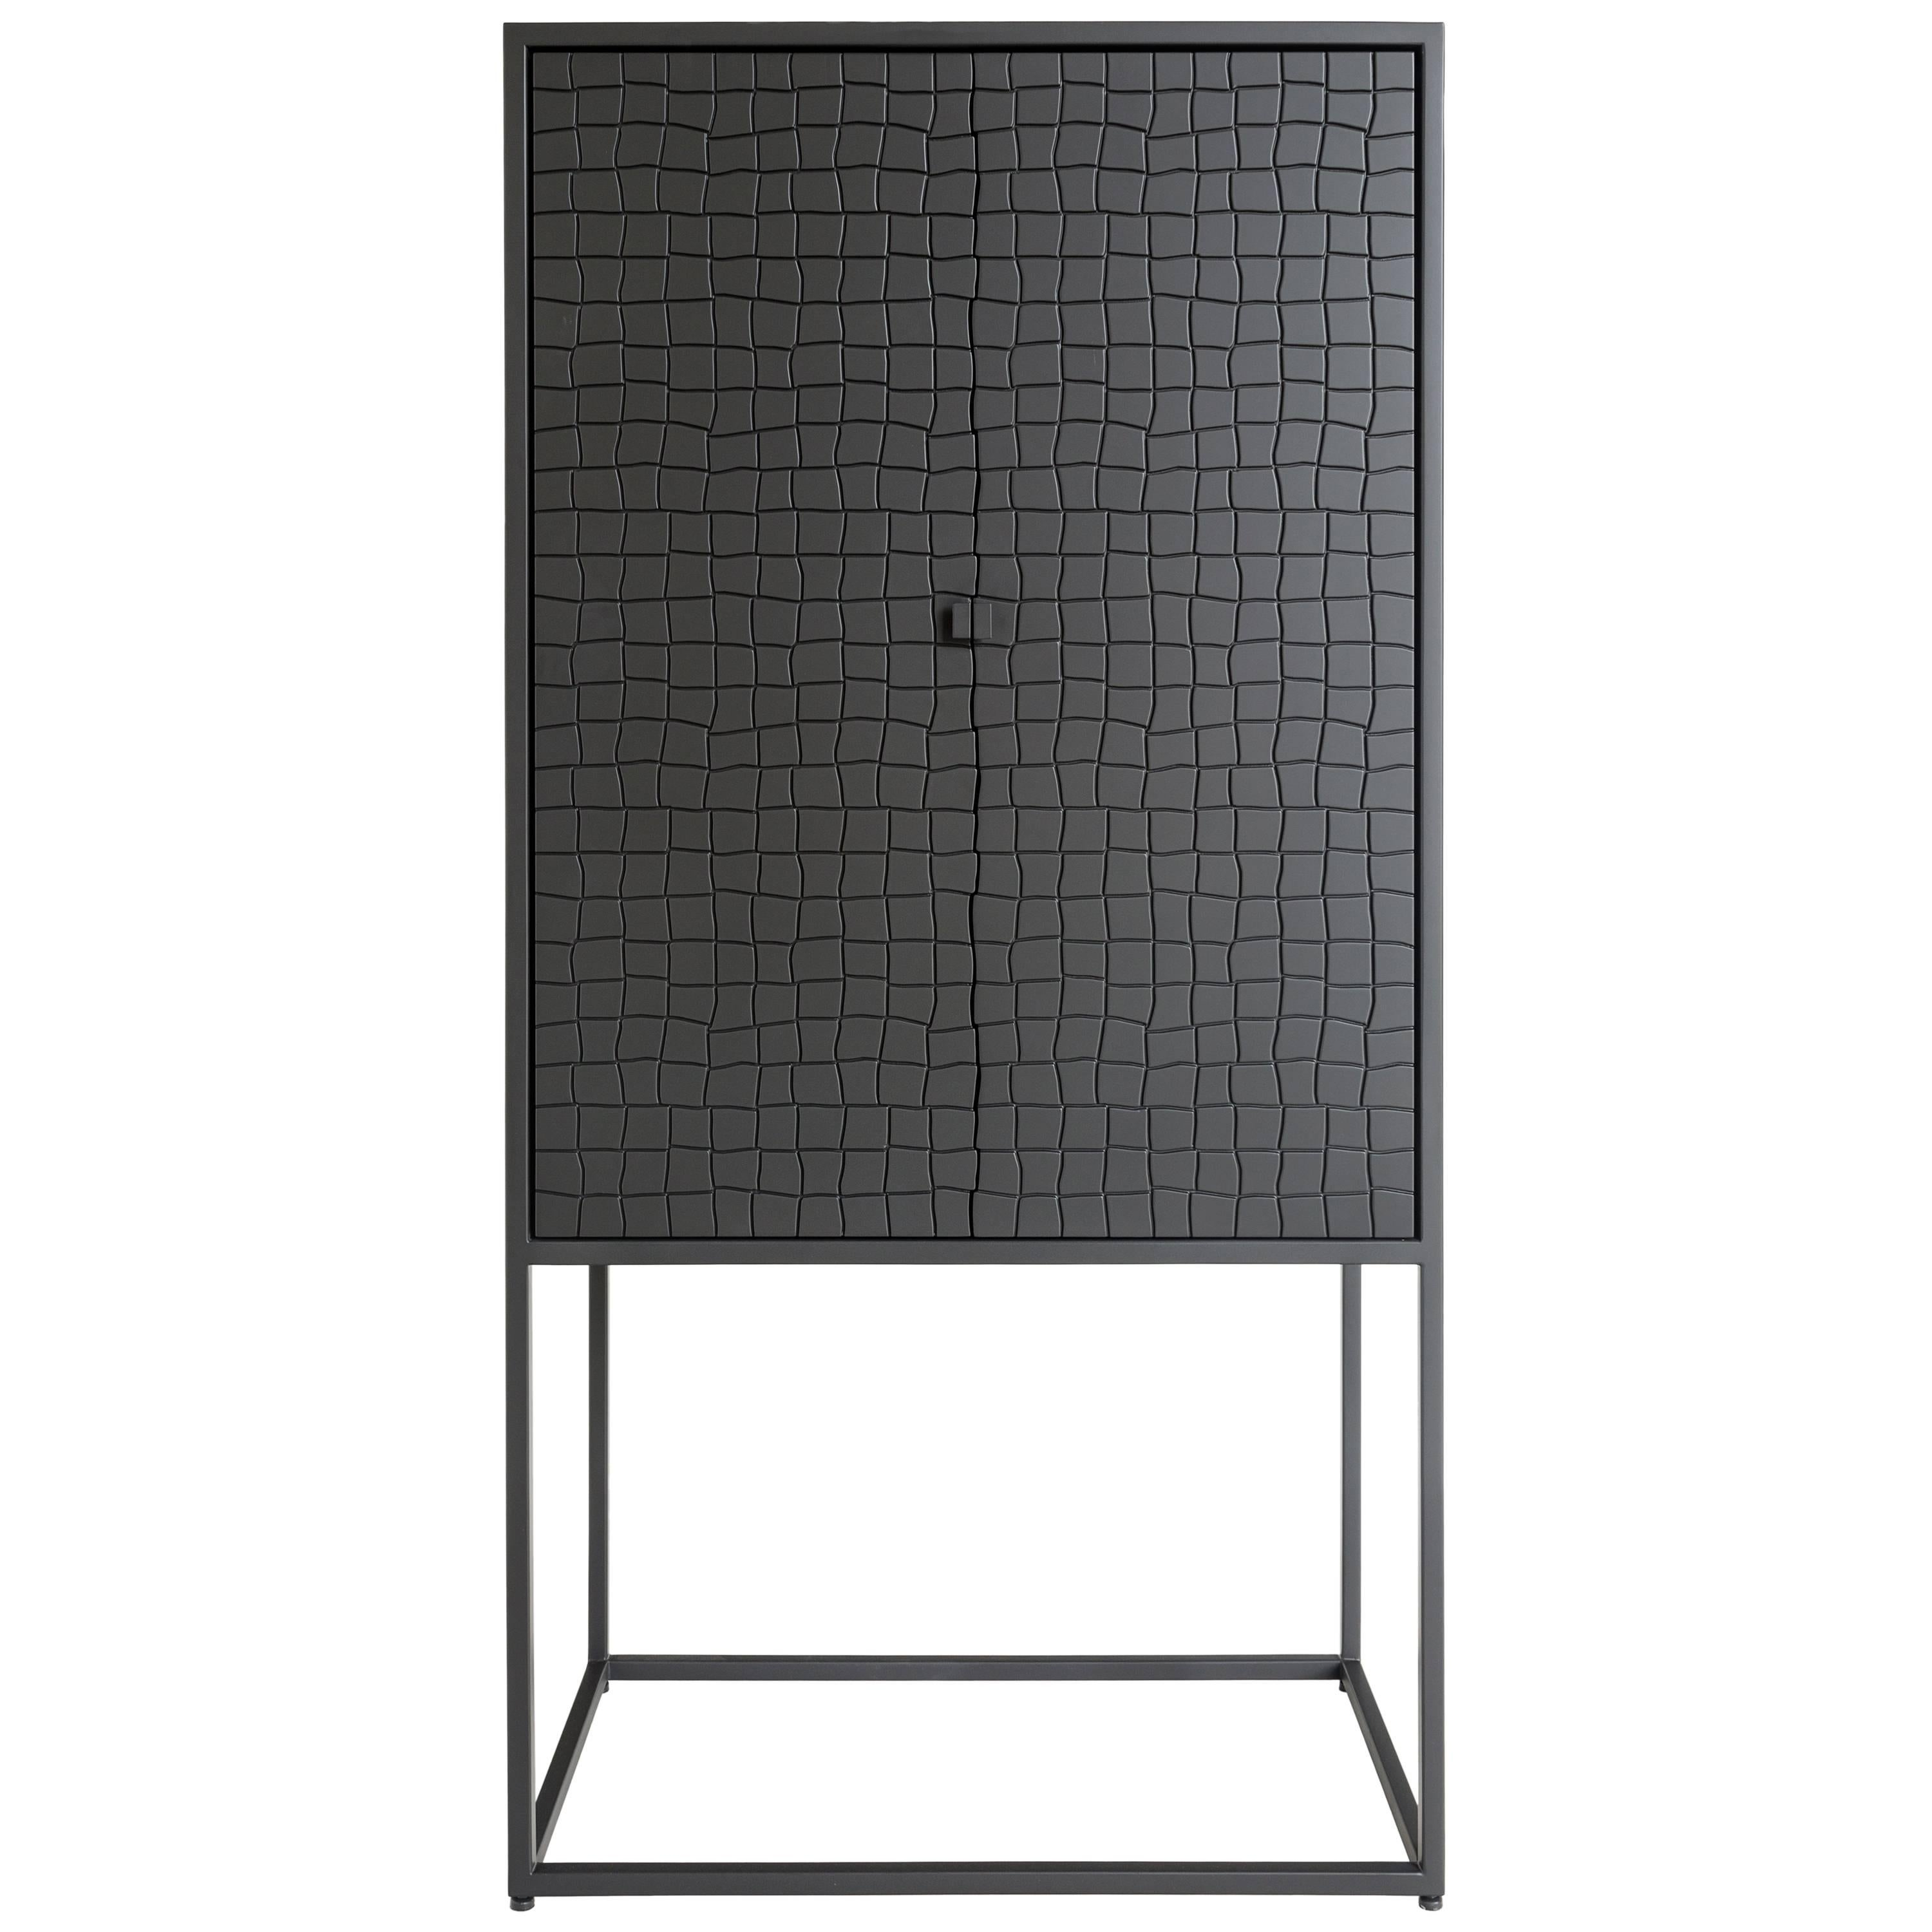 Basa Cabinet in Iron structure, interior in Peroba do Campo wood, lacquered MDF.